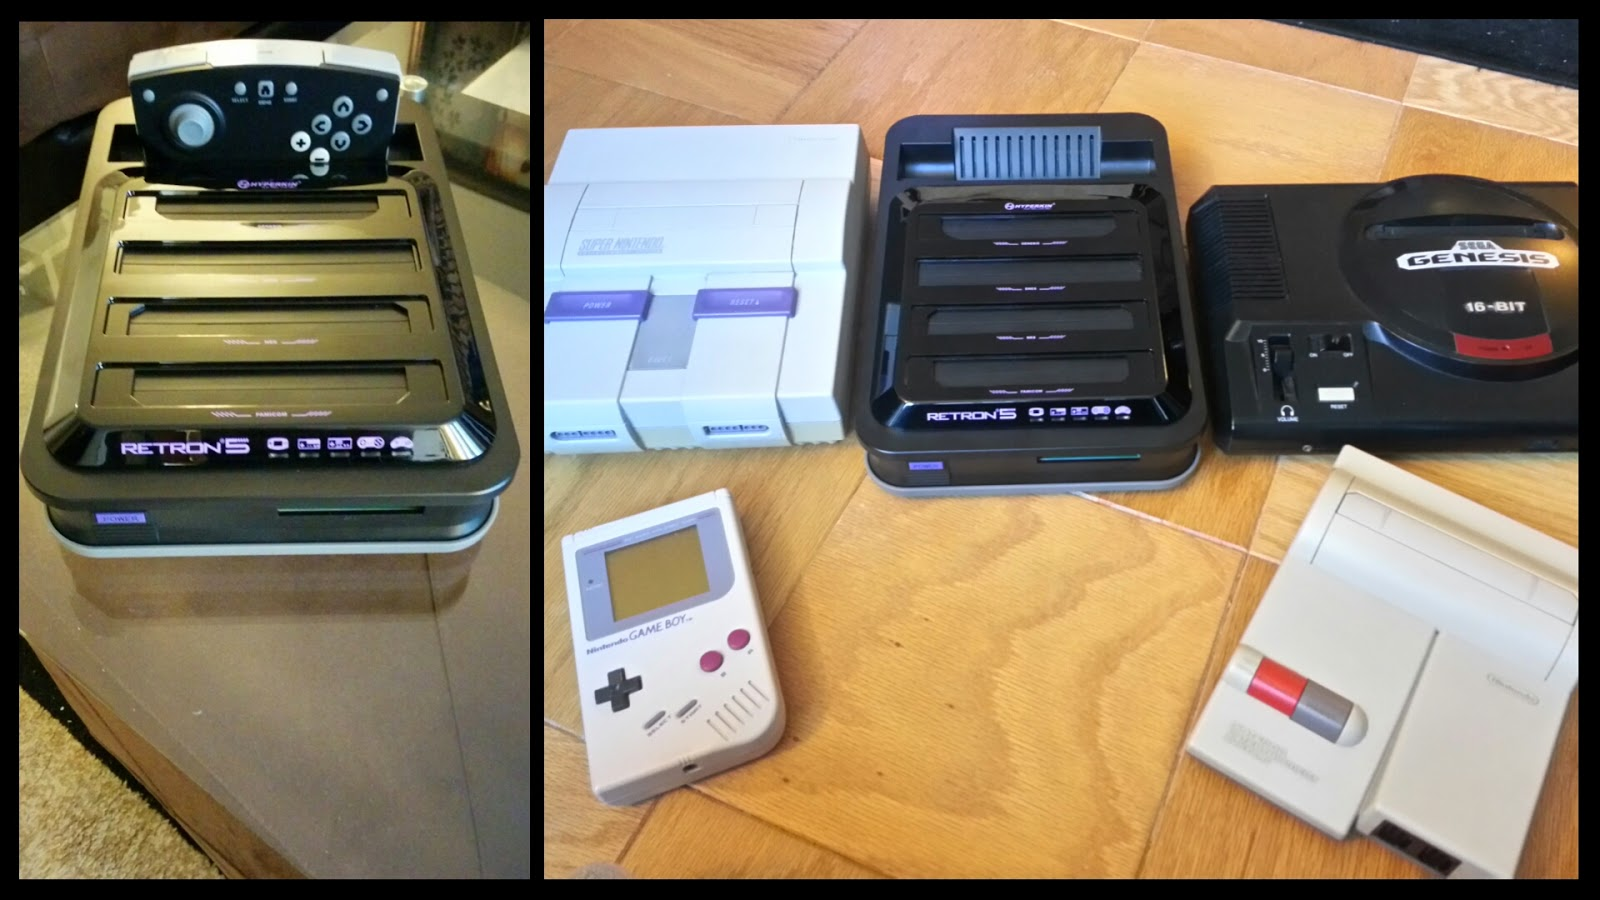 Retron 5 Review  How does it stack up to the original consoles  890479a1b7